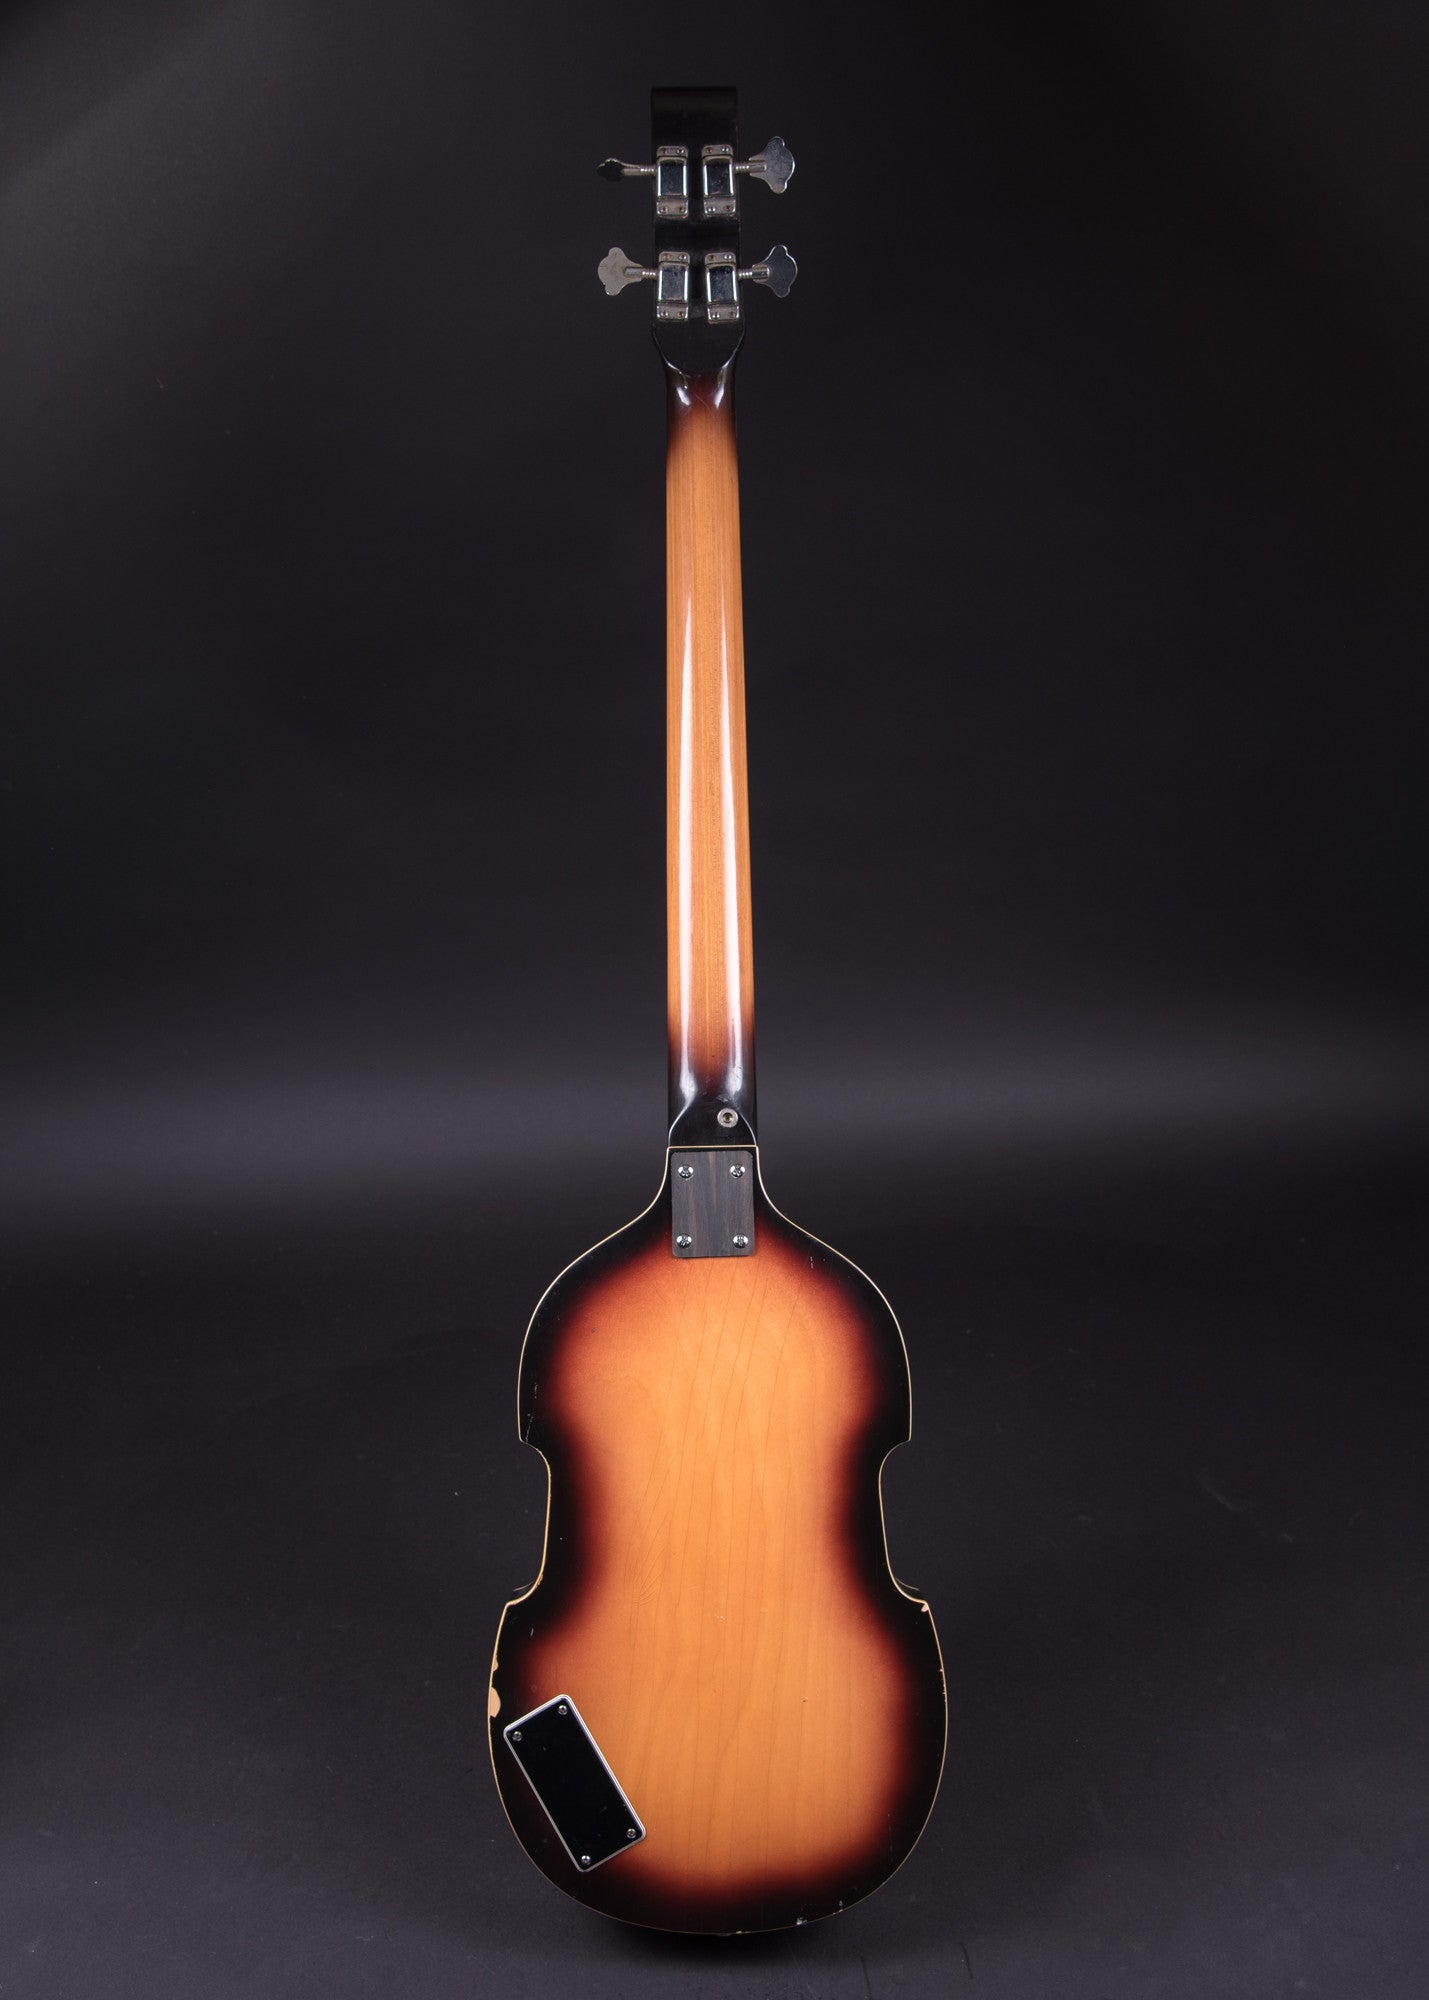 Unlabeled Violin Bass